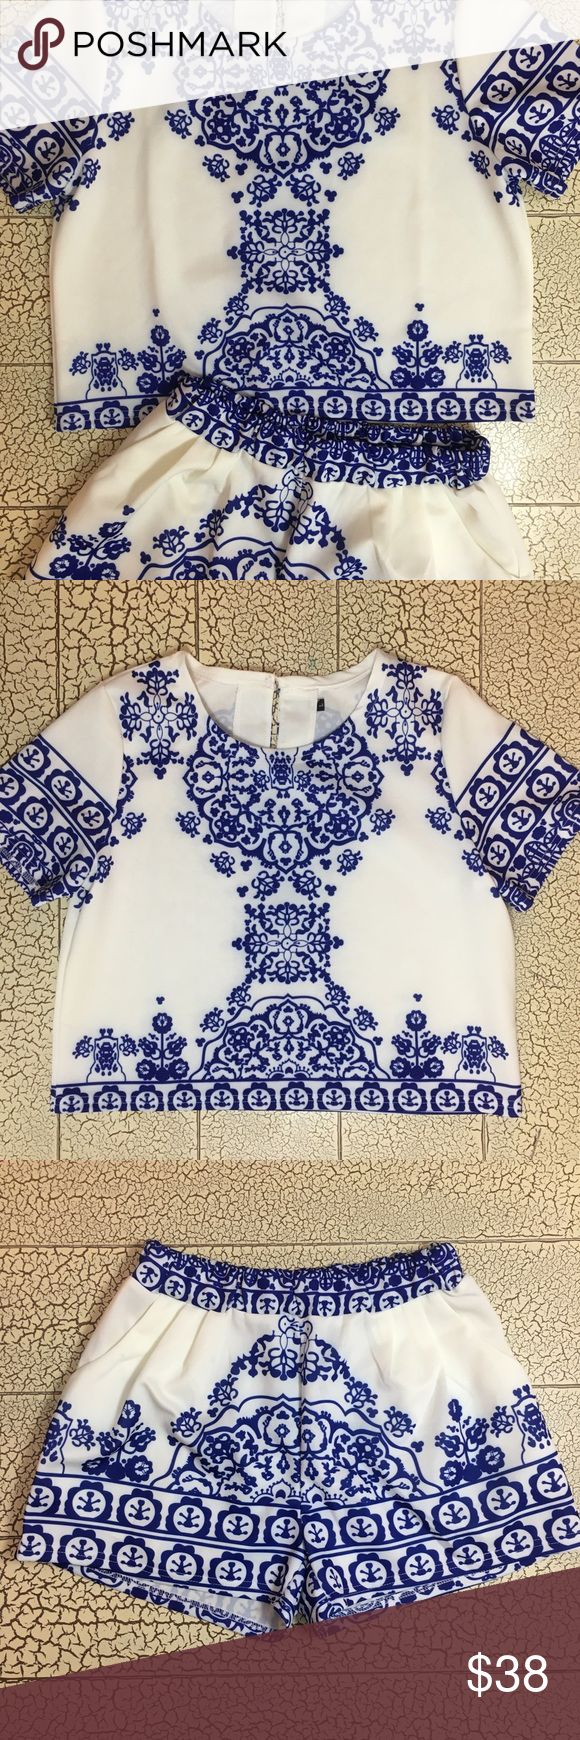 Blue and white crop top/shorts matching set Blue and white porcelain print crop top with matching shorts set! Boho style with a geometric pattern! Never been worn. Size small in both pieces. Material is polyester. Tops Crop Tops